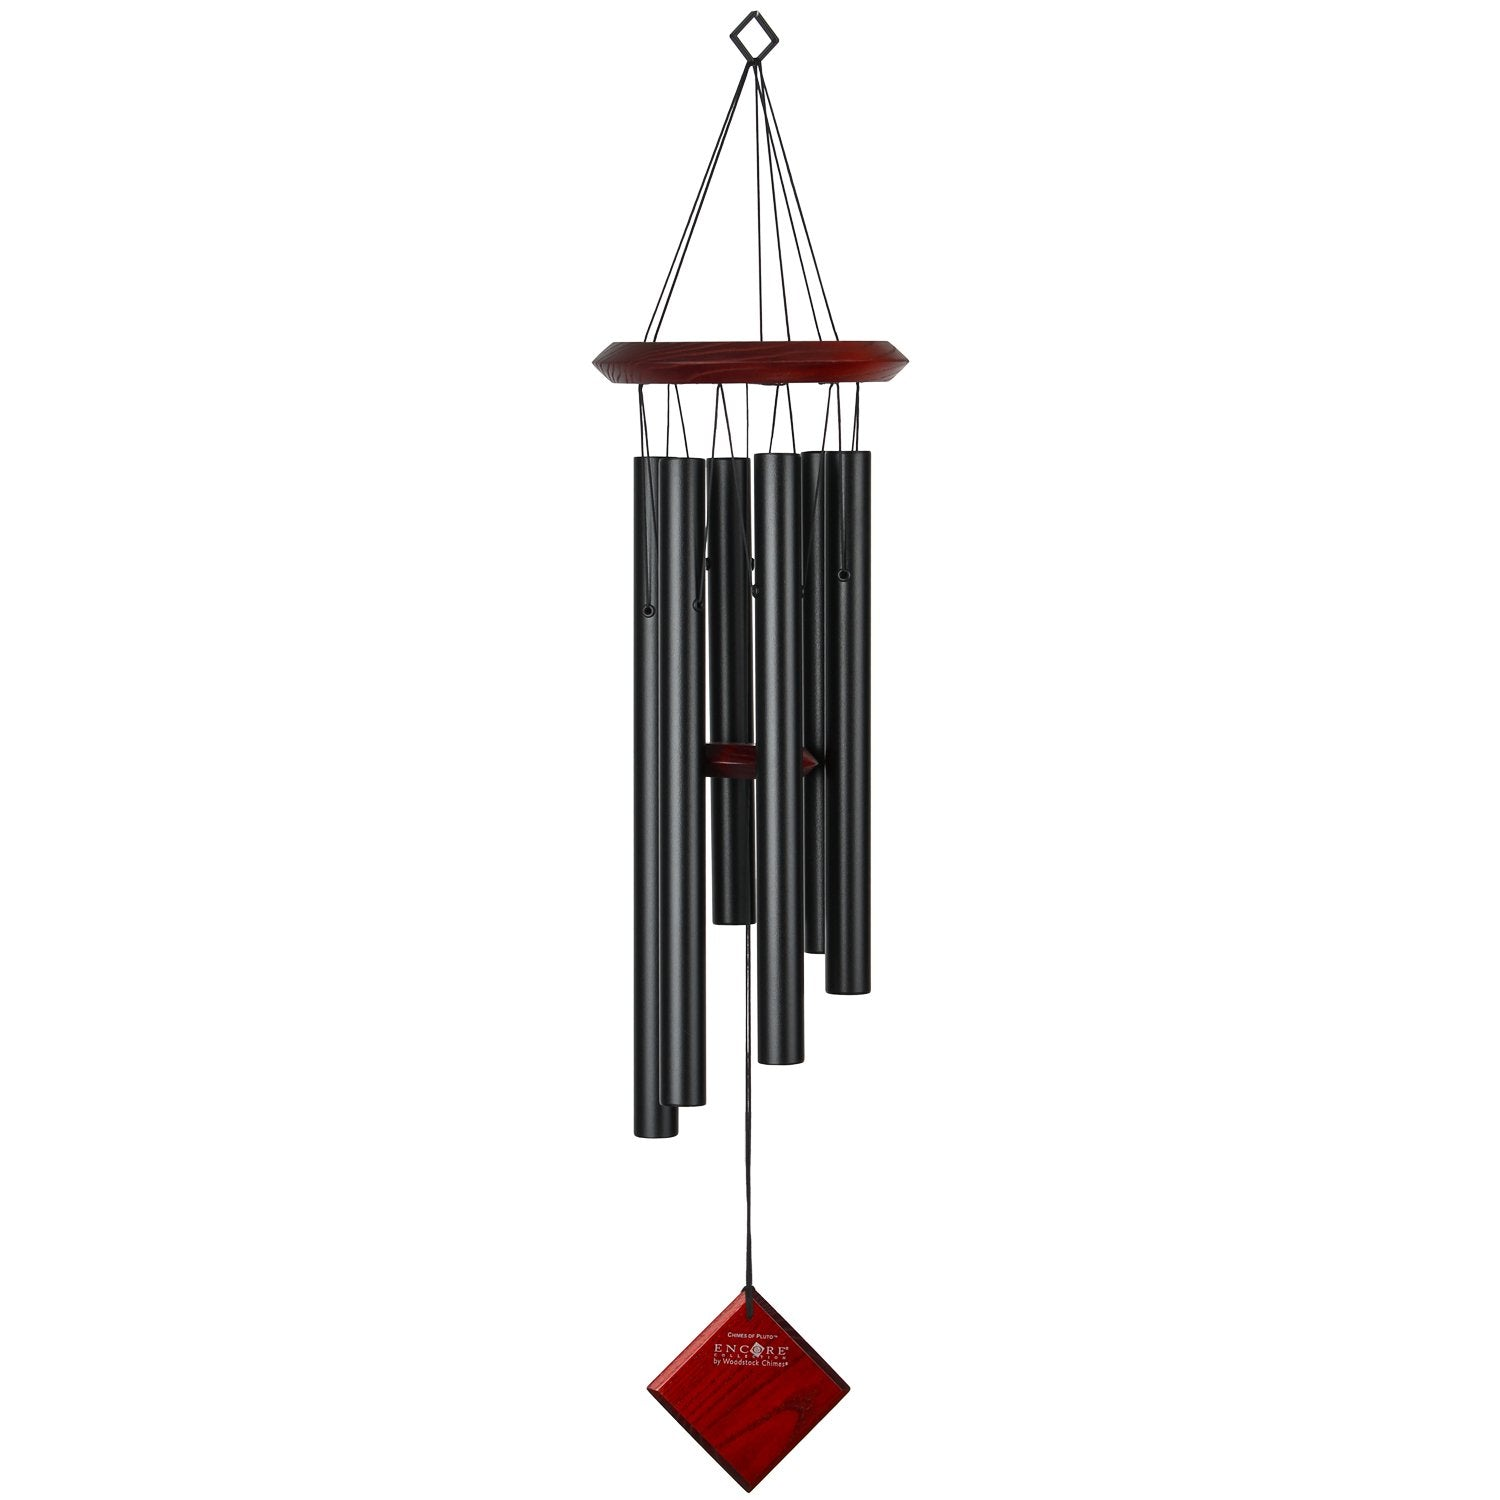 Encore Chimes of Pluto - Black full product image